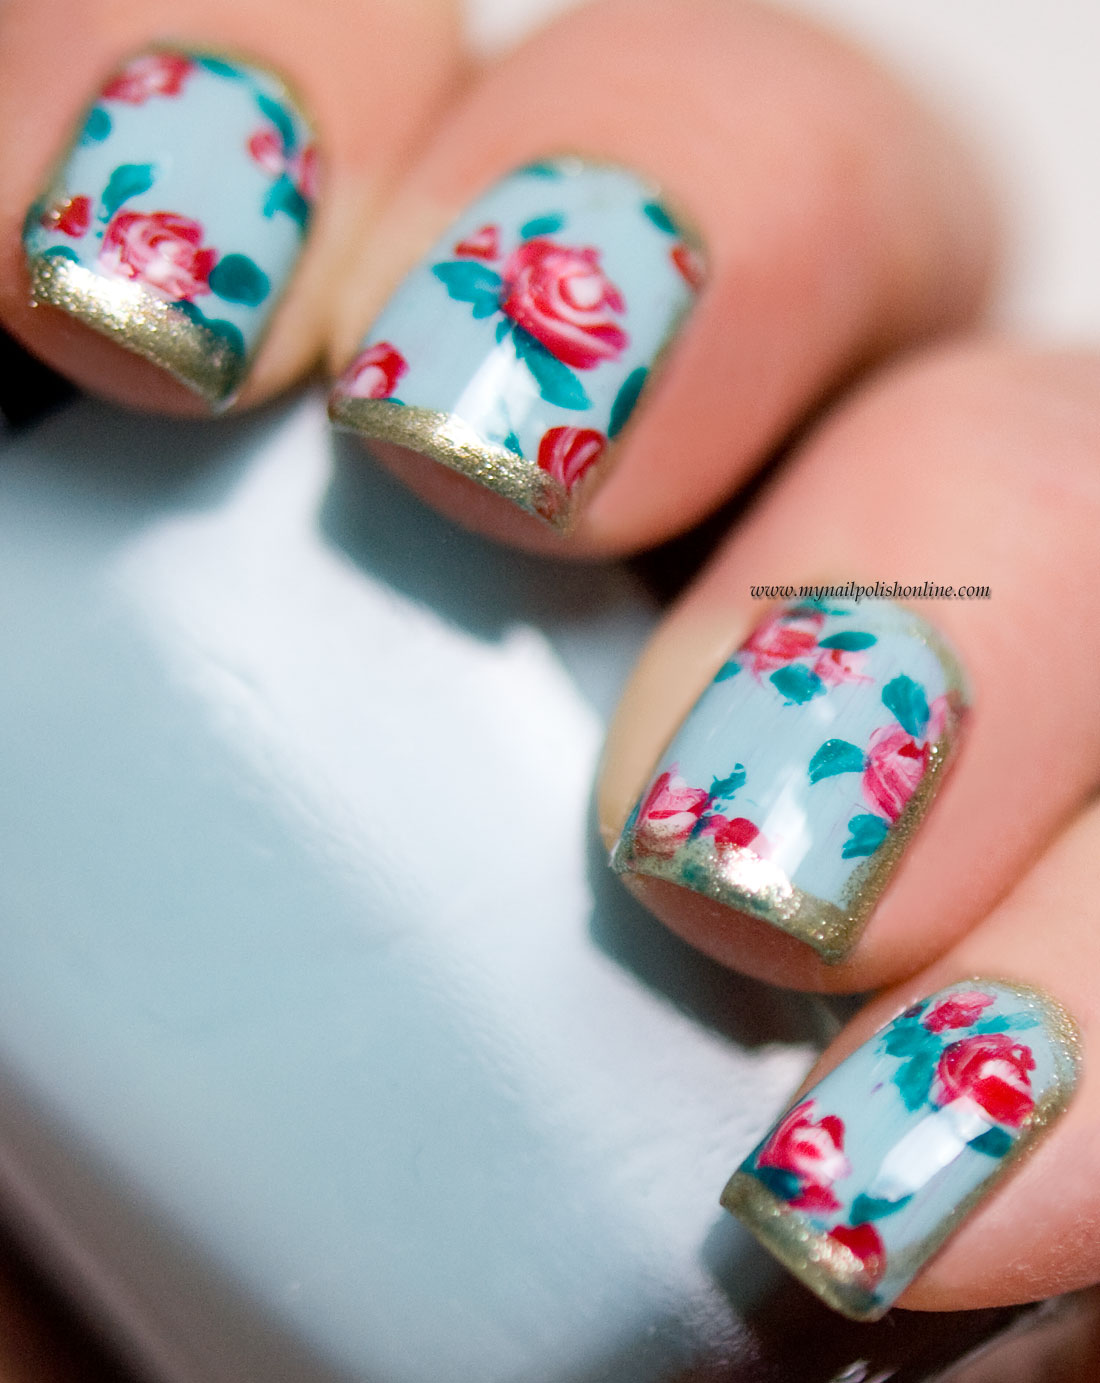 Nail Art – Roses on blue | | My Nail Polish Online